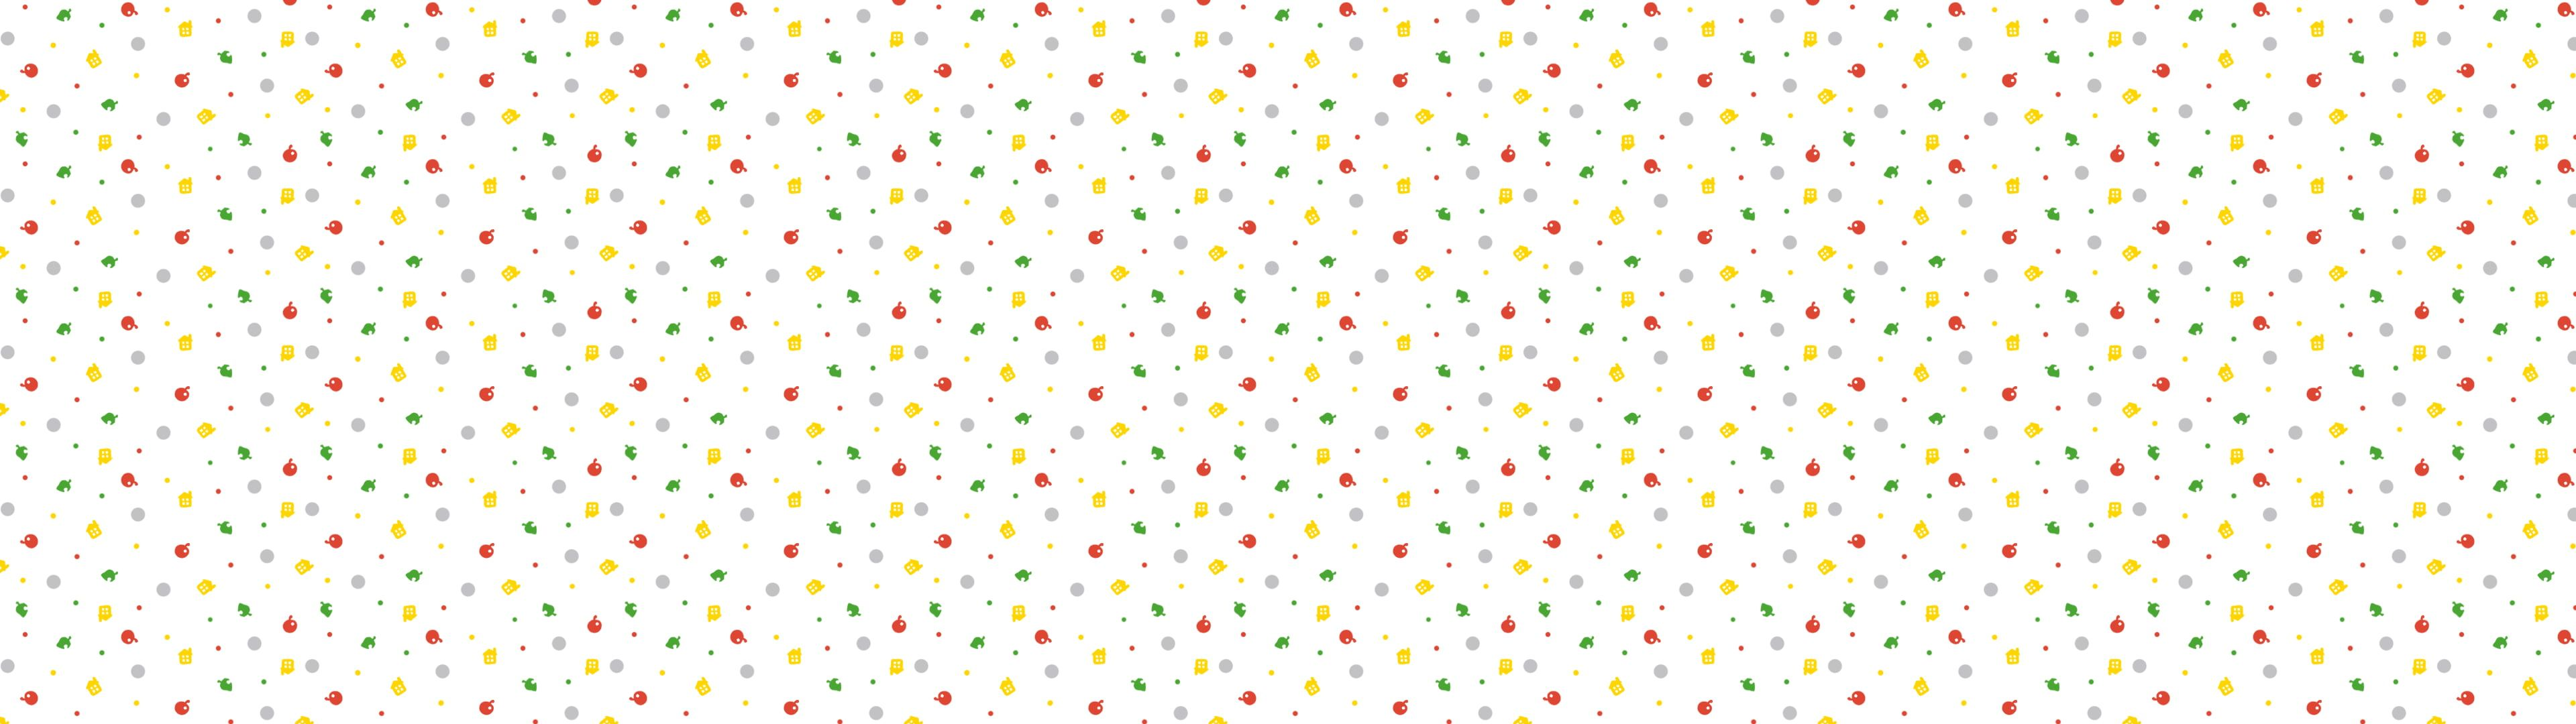 White Red And Yellow Digital Wallpaper Animal Crossing Animal